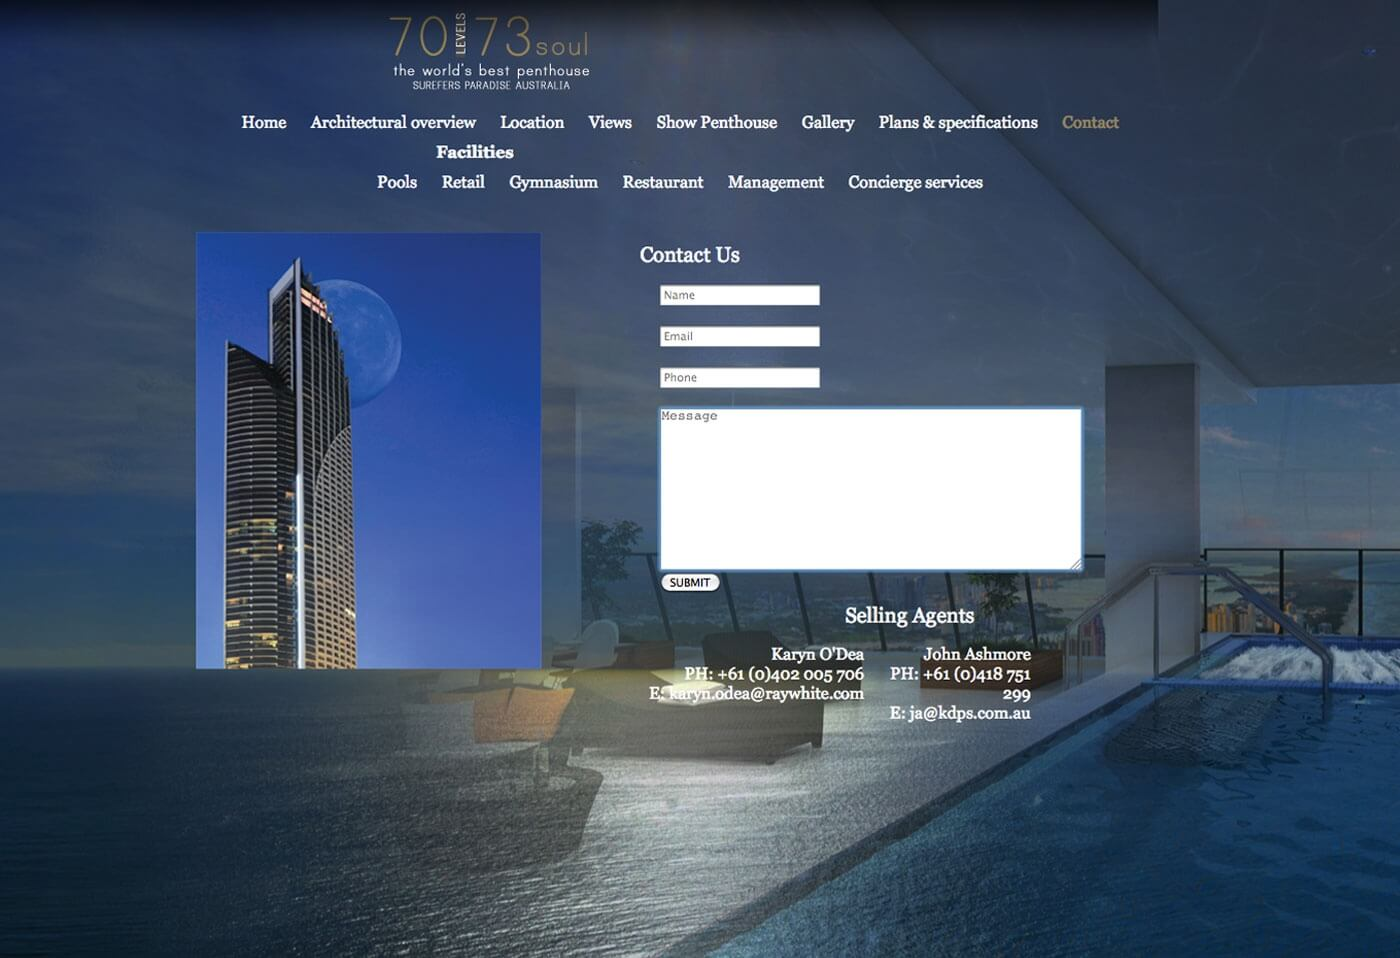 Able Video Soul – The World's Best Penthouse Website 03